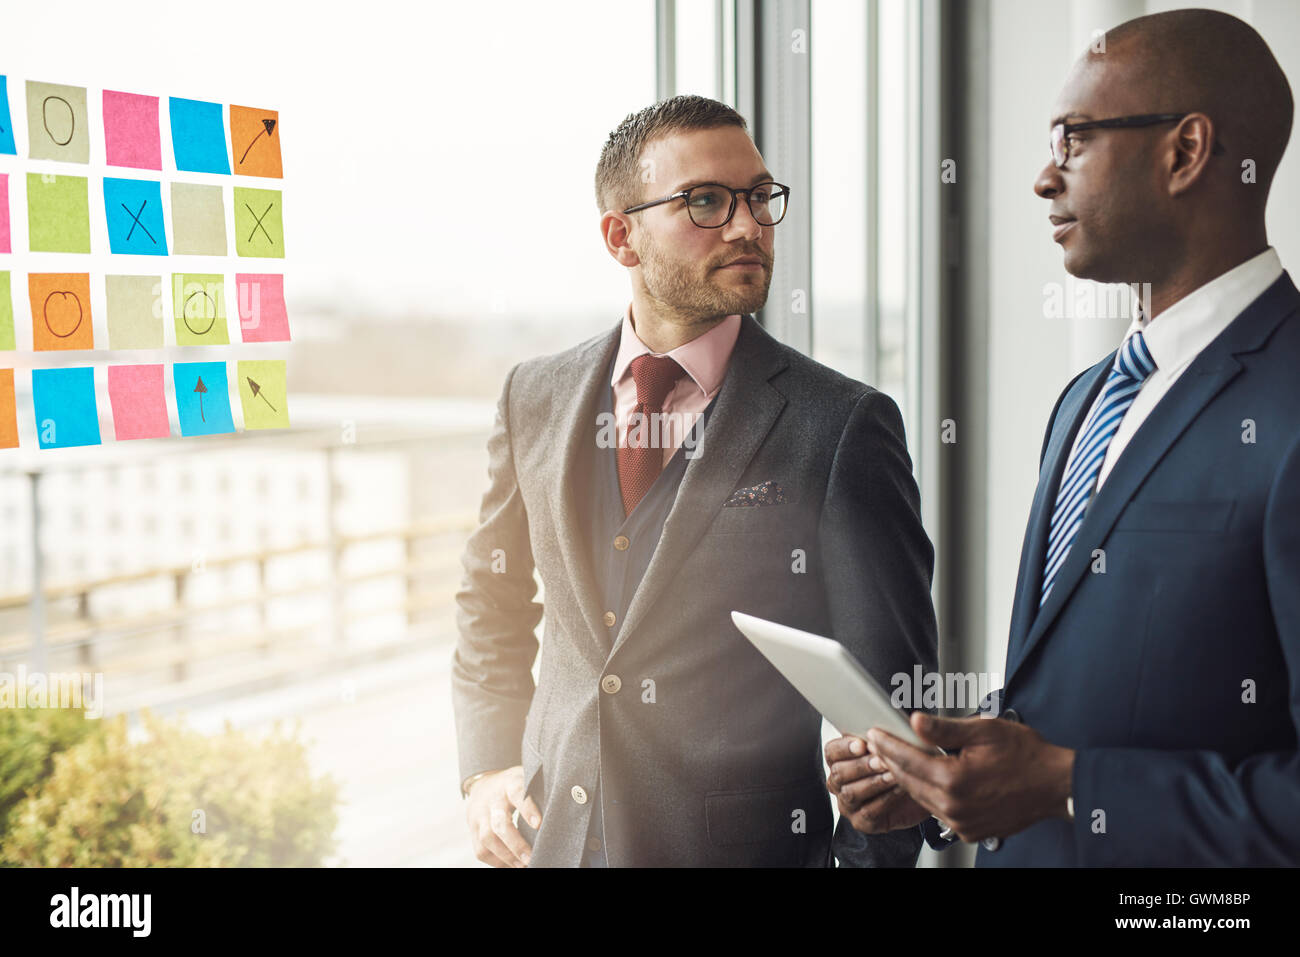 Caucasian and African businessman in a meeting standing in front of colorful memos on the glass of a window in the - Stock Image